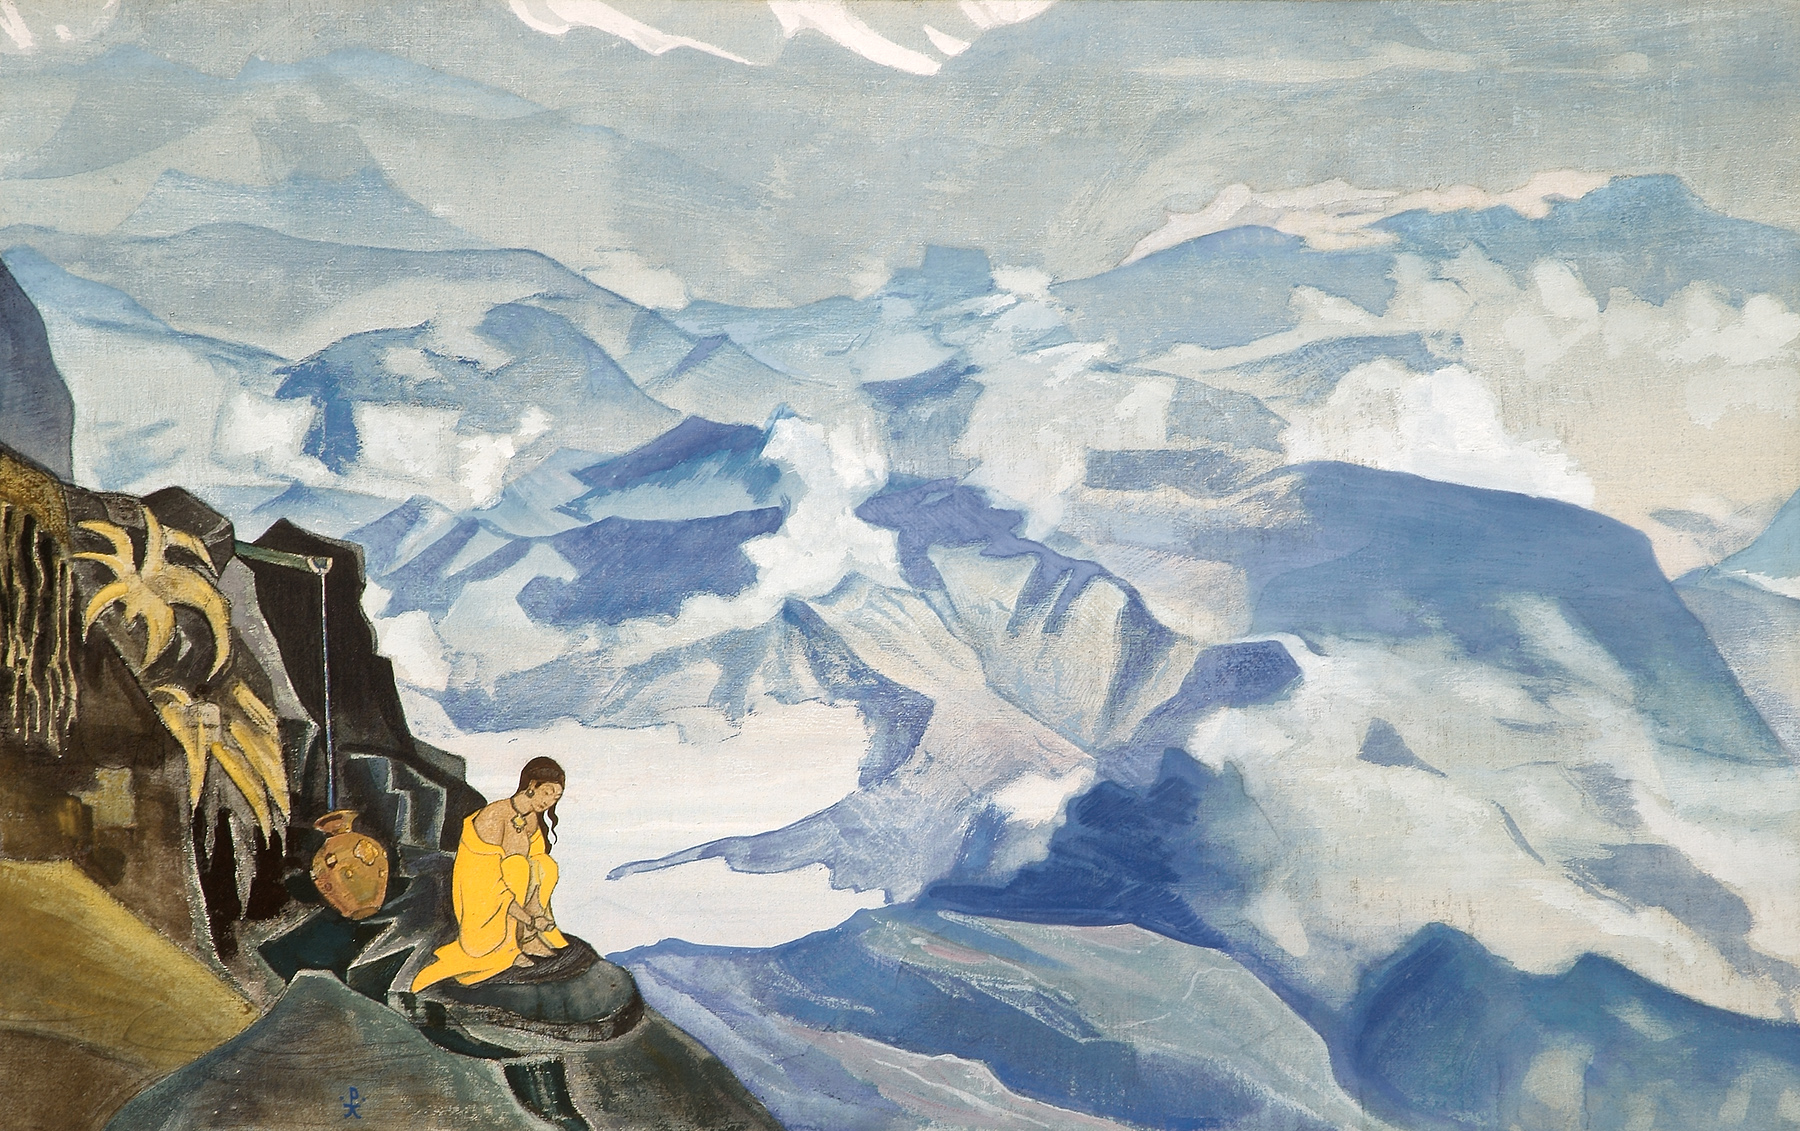 St francis  D1 81 D0 B2  D1 84 D1 80 D0 B0 D0 BD D1 86 D0 B8 D1 81 D0 BA by nicholas roerich1931 besides Drops Of Life 1924 further Moses The Leader 1926 further Show in addition 11618992. on art of nicholas roerich